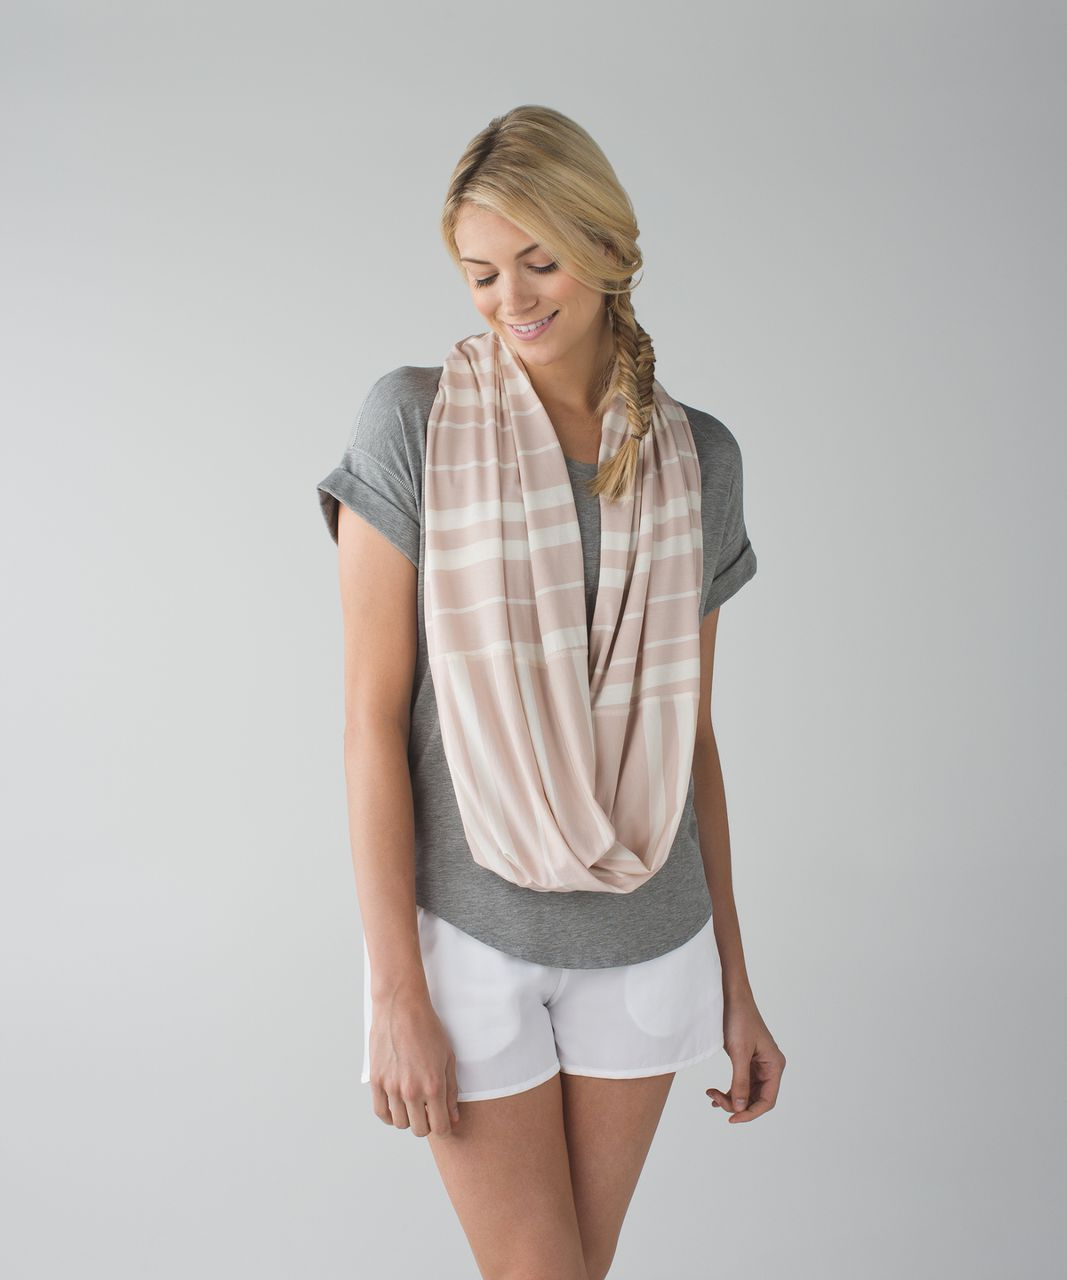 Lululemon Vinyasa Scarf *Vitasea - Beach Blanket Stripe Angel Wing Grain